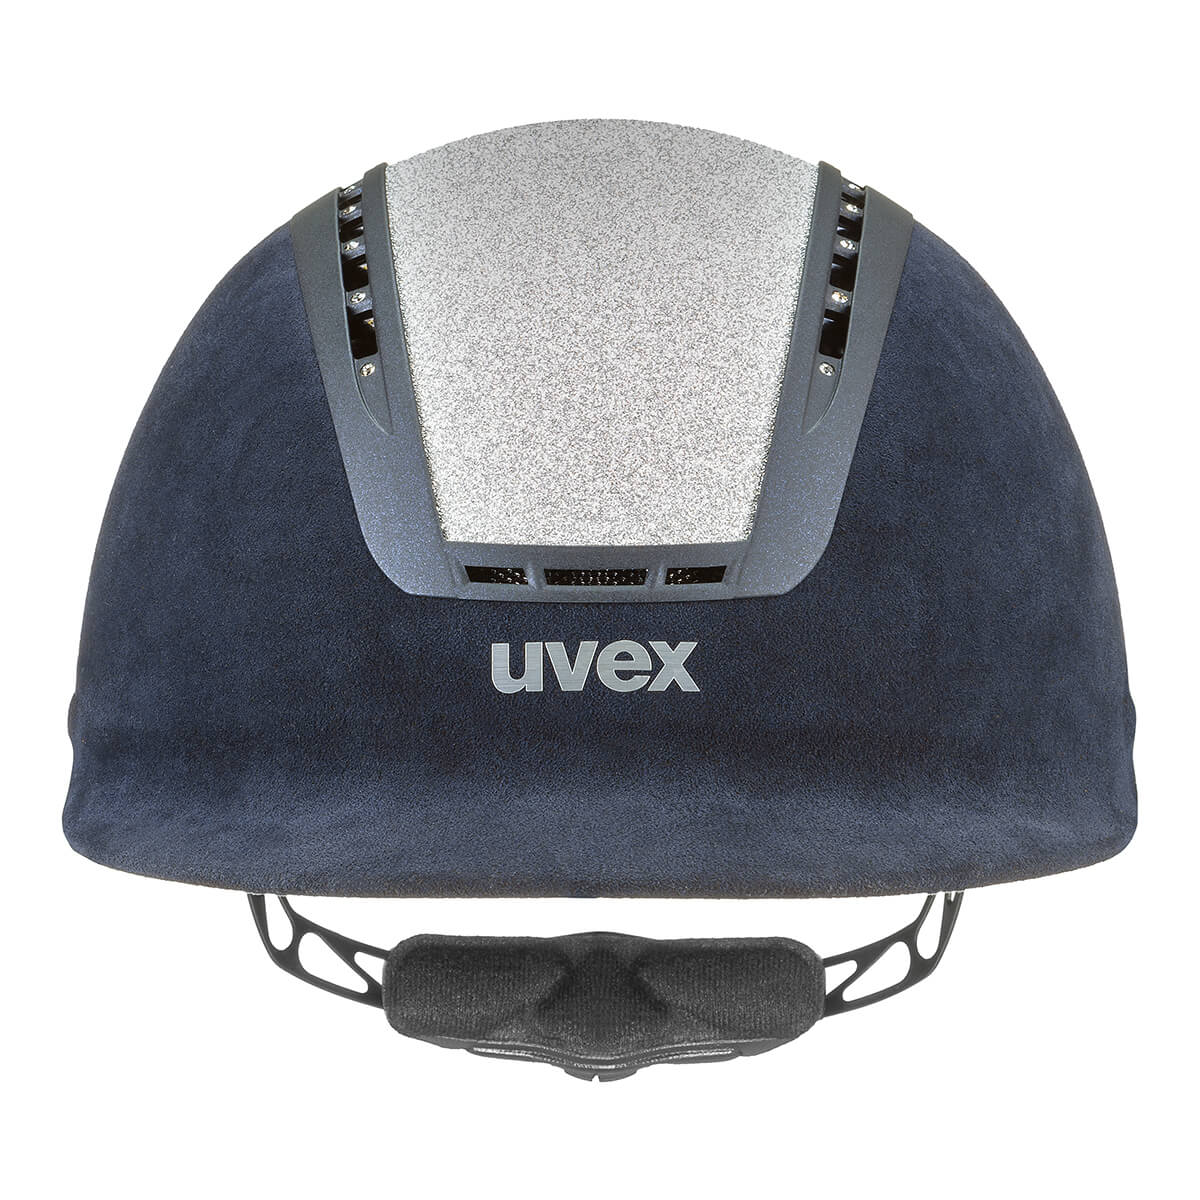 Uvex Suxxeed Glamour Riding Hat in Blue & Silver - Front